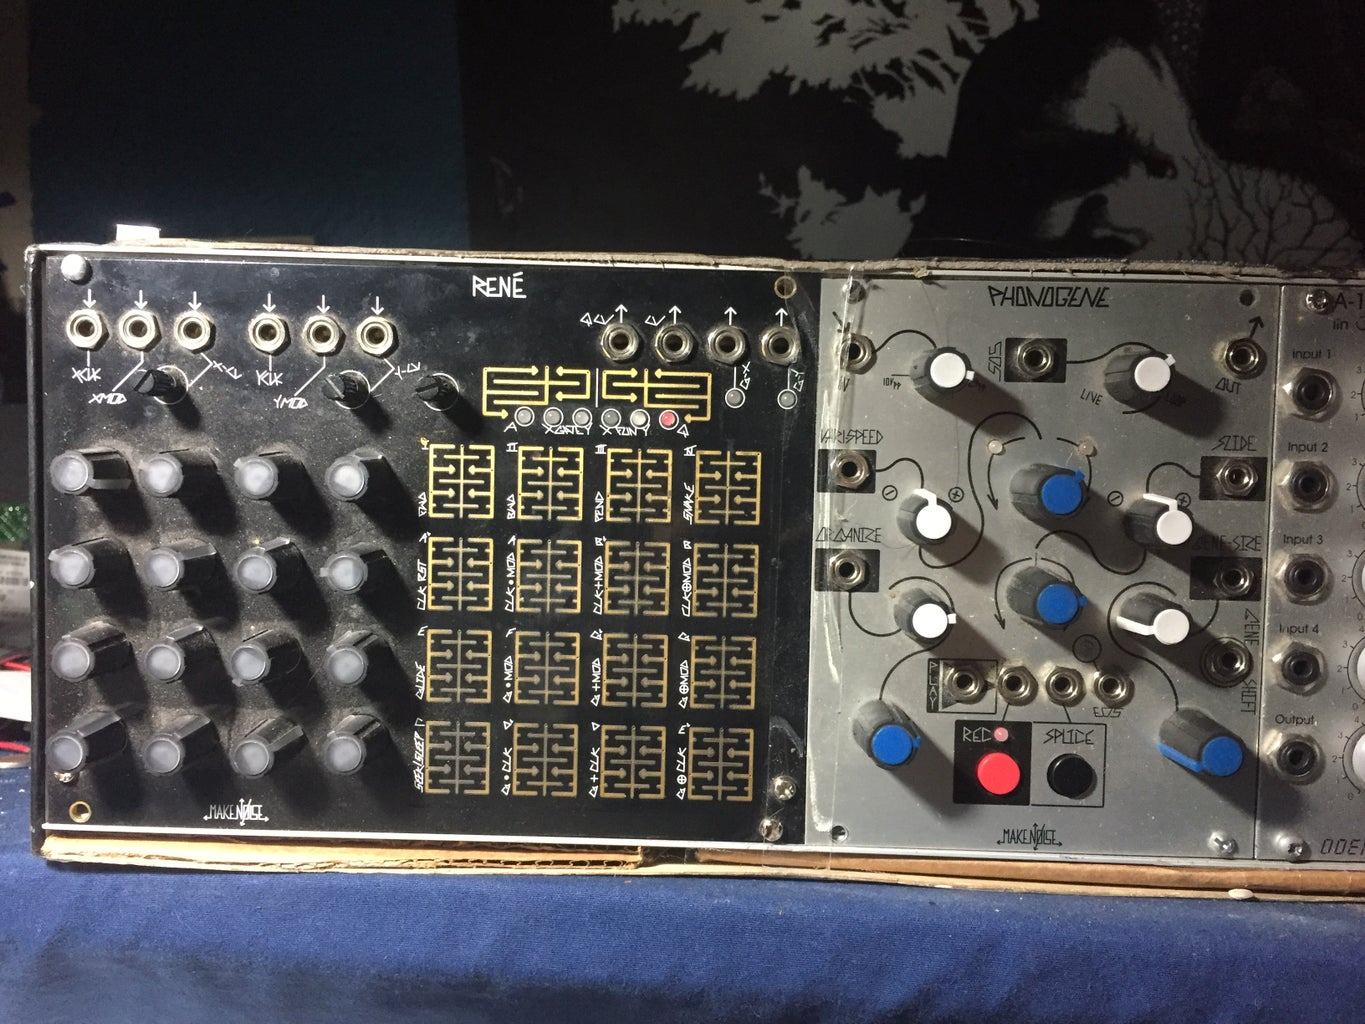 The Modules and Patch Used